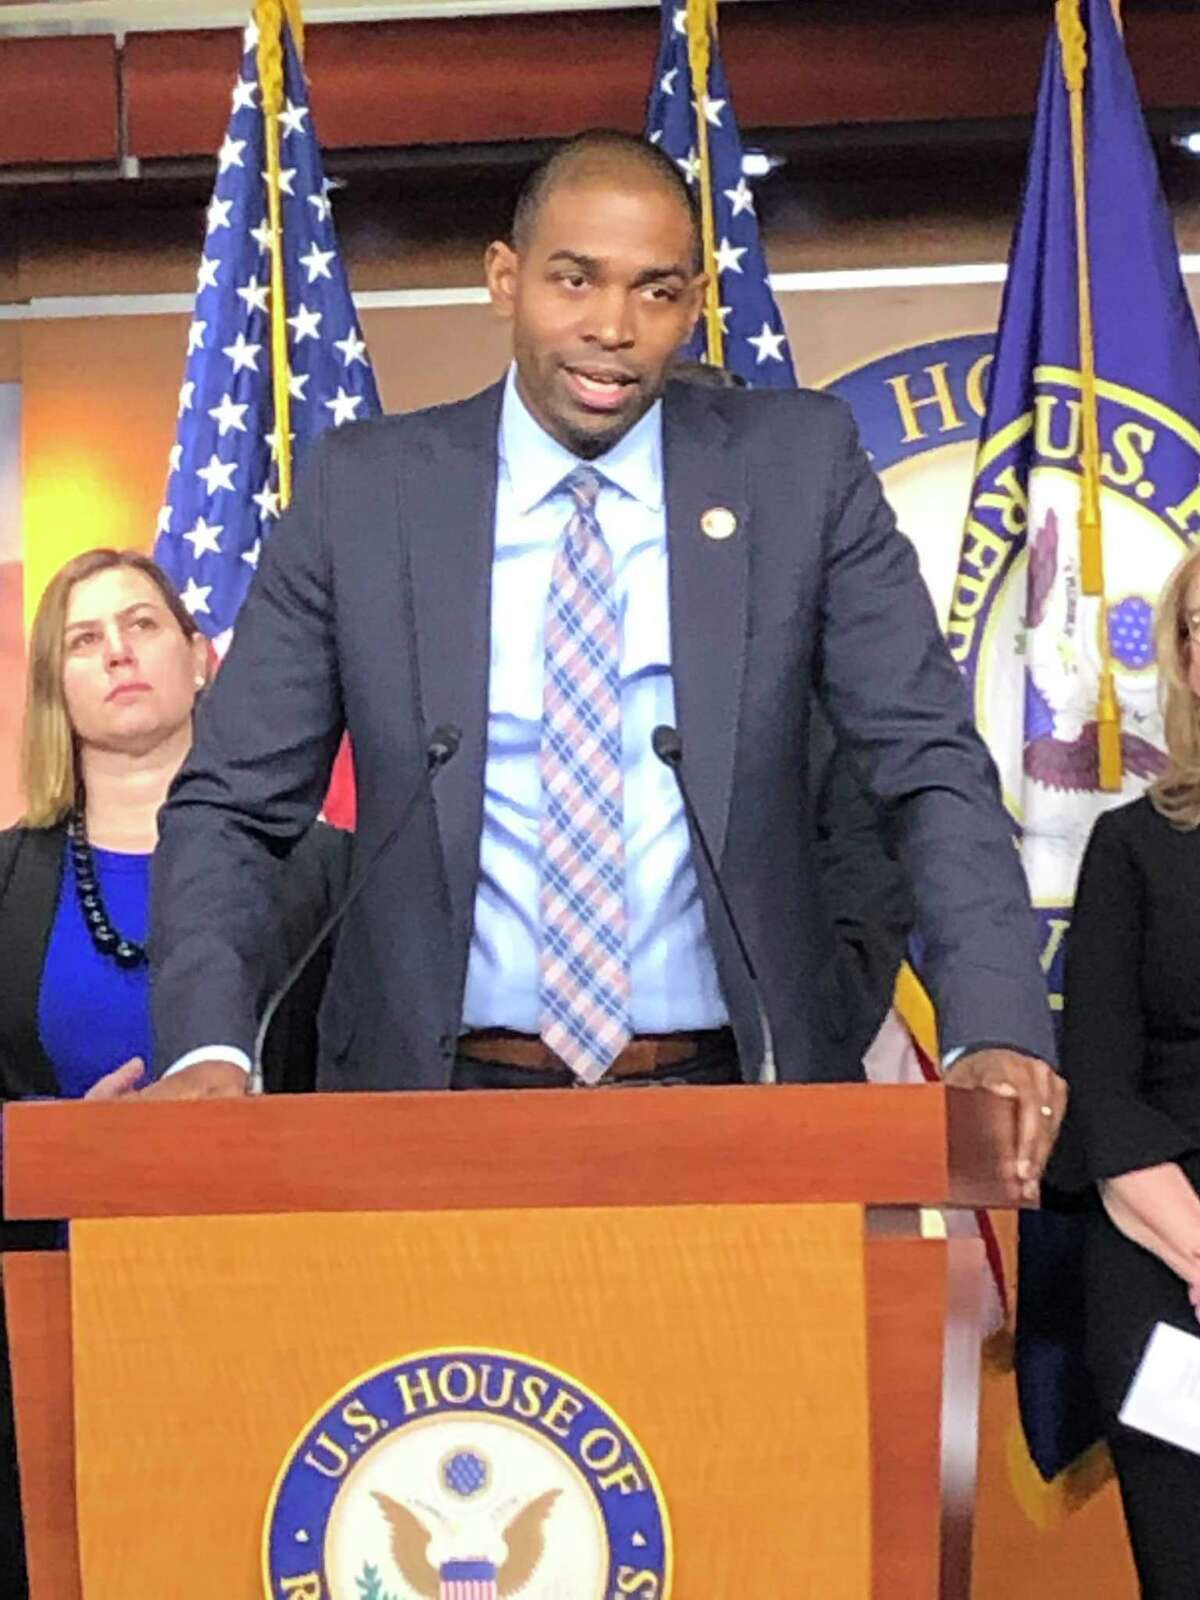 U.S. Rep. Antonio Delgado, D-Rhinebeck, speaks at a Jan. 23, 2019, news conference in Washington, D.C.